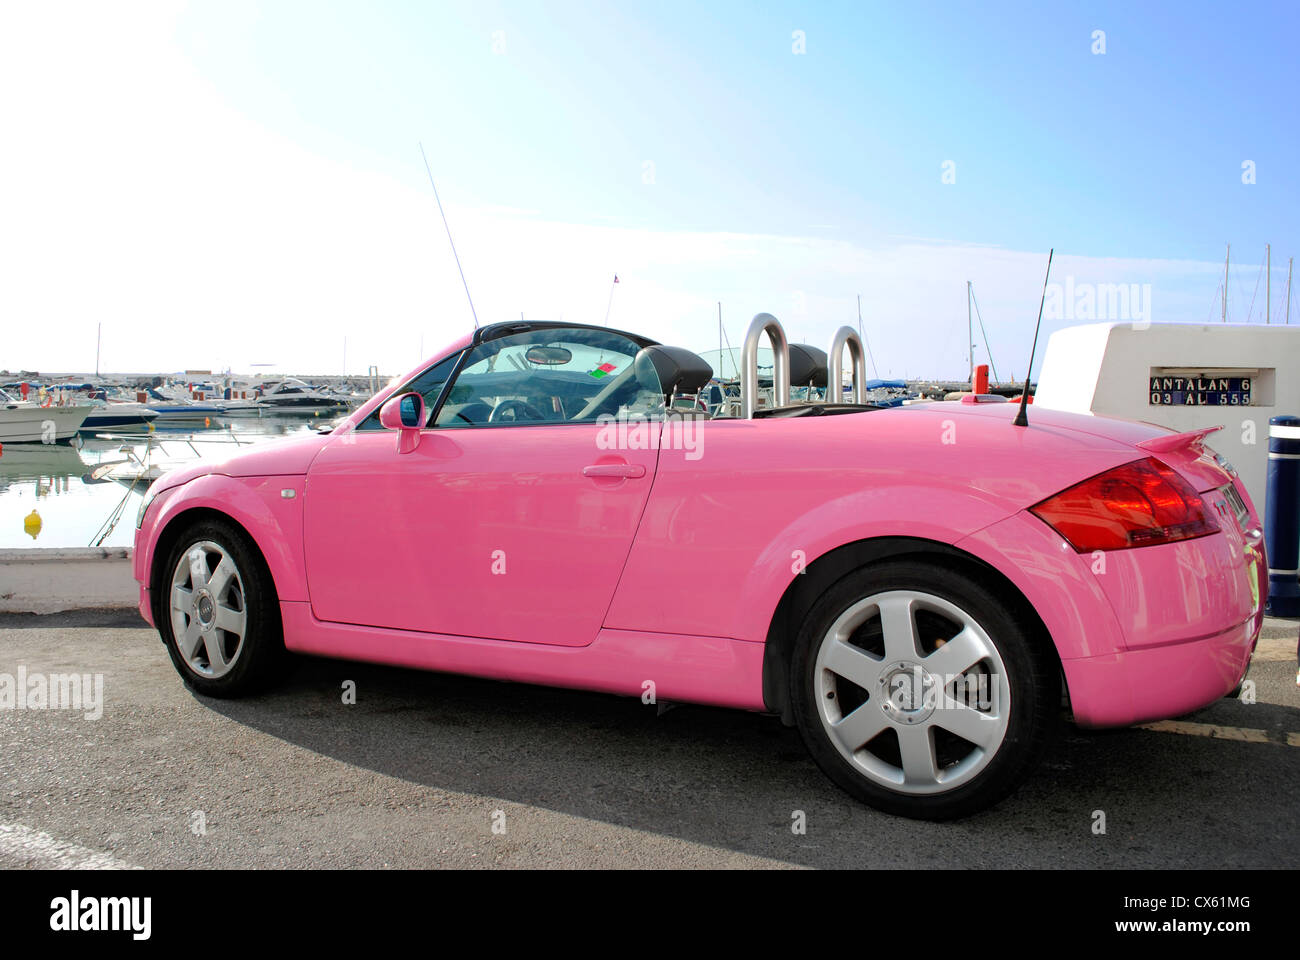 Audi Tt Rossa Pink Audi Tt Roadster Stock Photo 50534864 Alamy